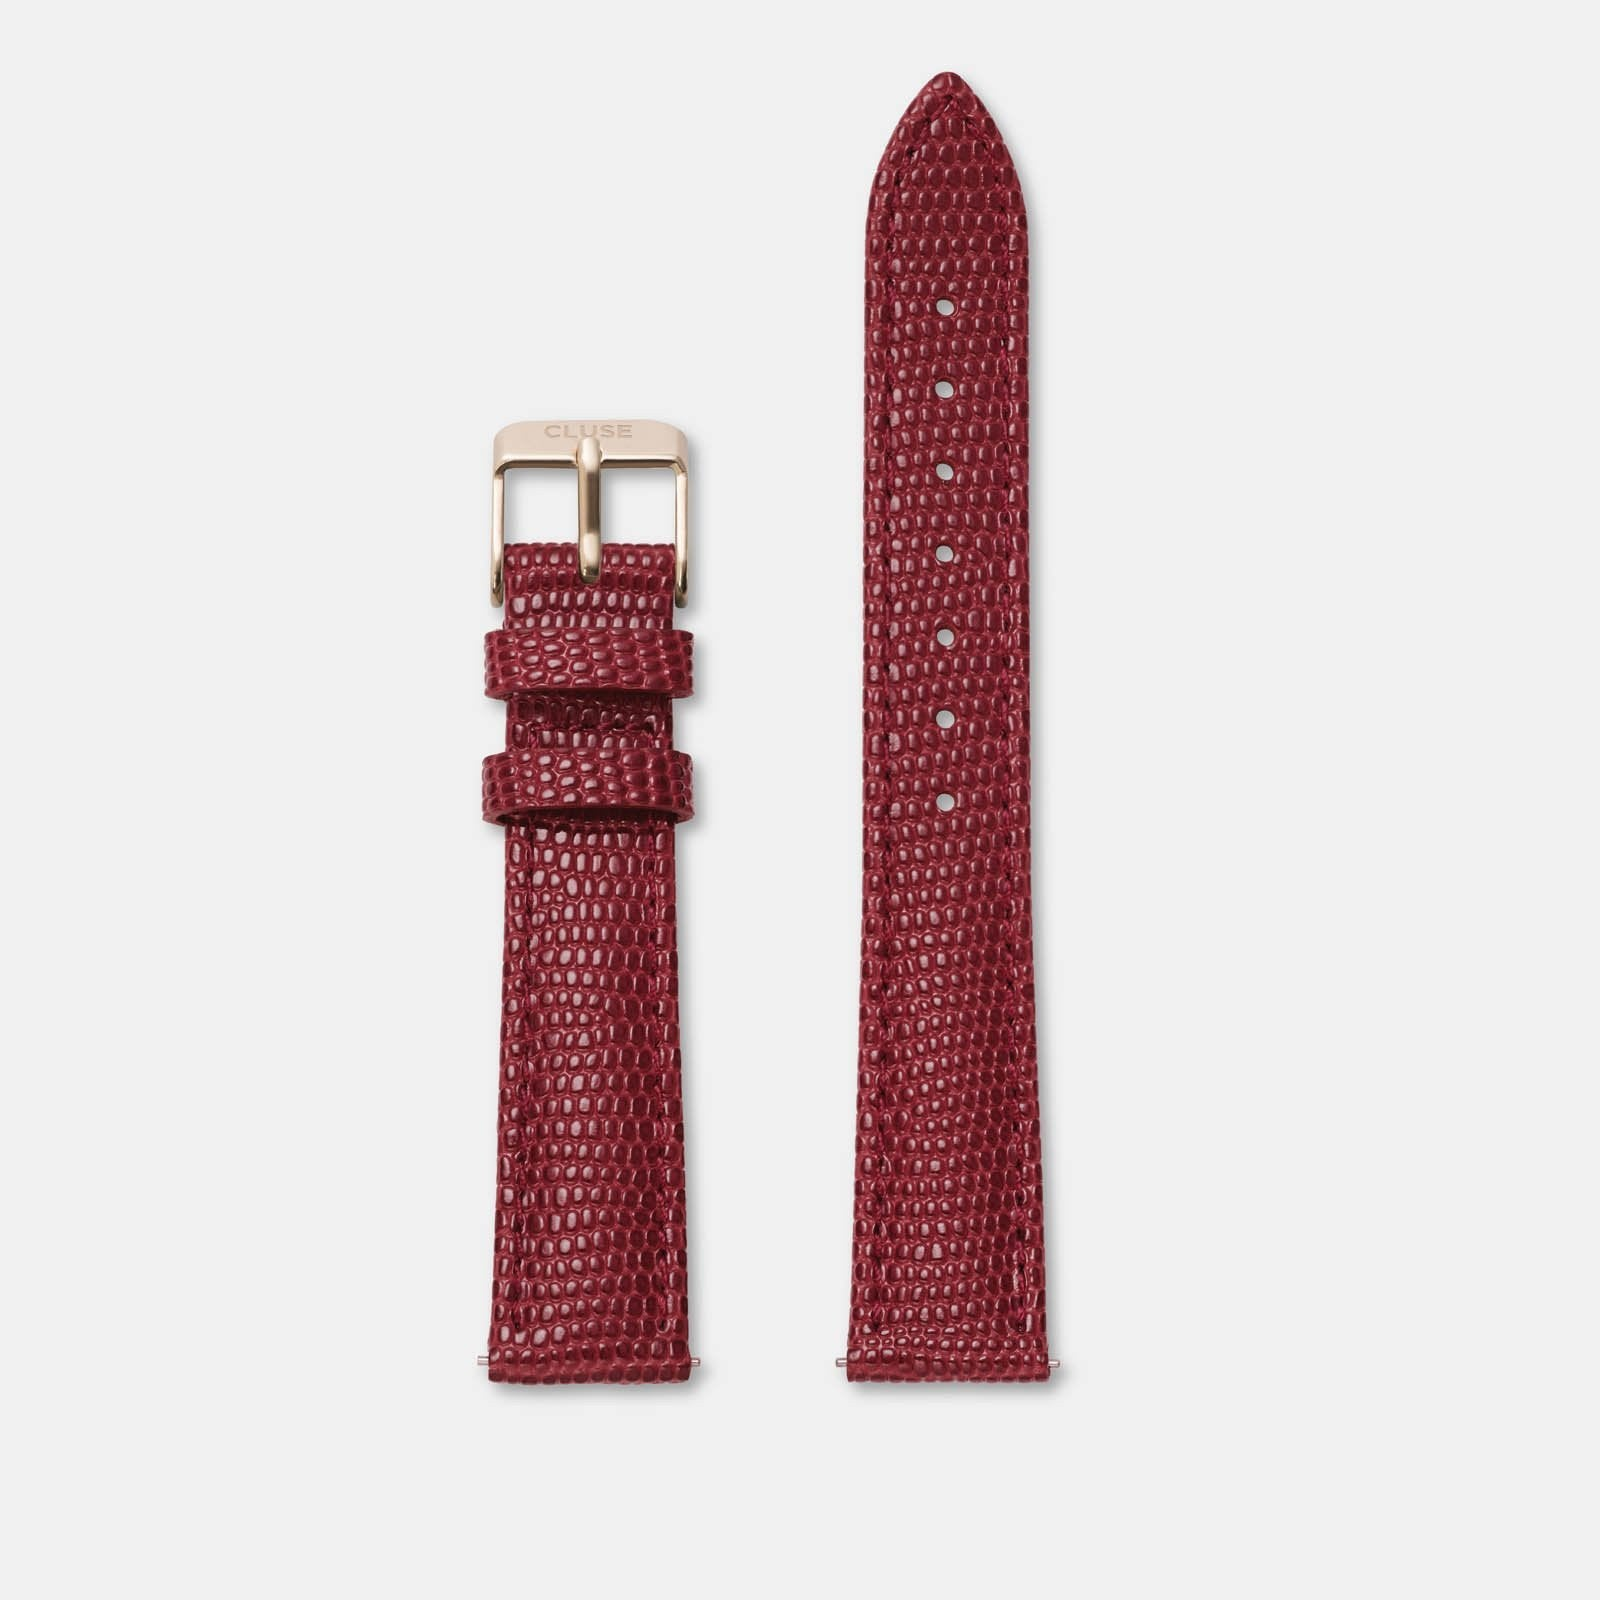 CLUSE 16 mm Strap Deep Red Lizard/Rose Gold CLS383 - Correa de reloj